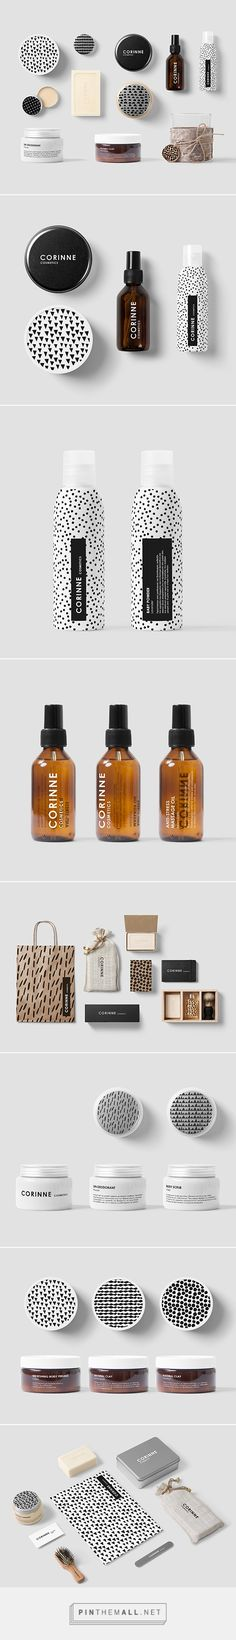 Corinne Designed by Anna Trympali Craft Packaging, Food Packaging Design, Soap Packaging, Branding Design, Skincare Packaging, Beauty Packaging, Cosmetic Packaging, Packaging Inspiration, Unique Makeup